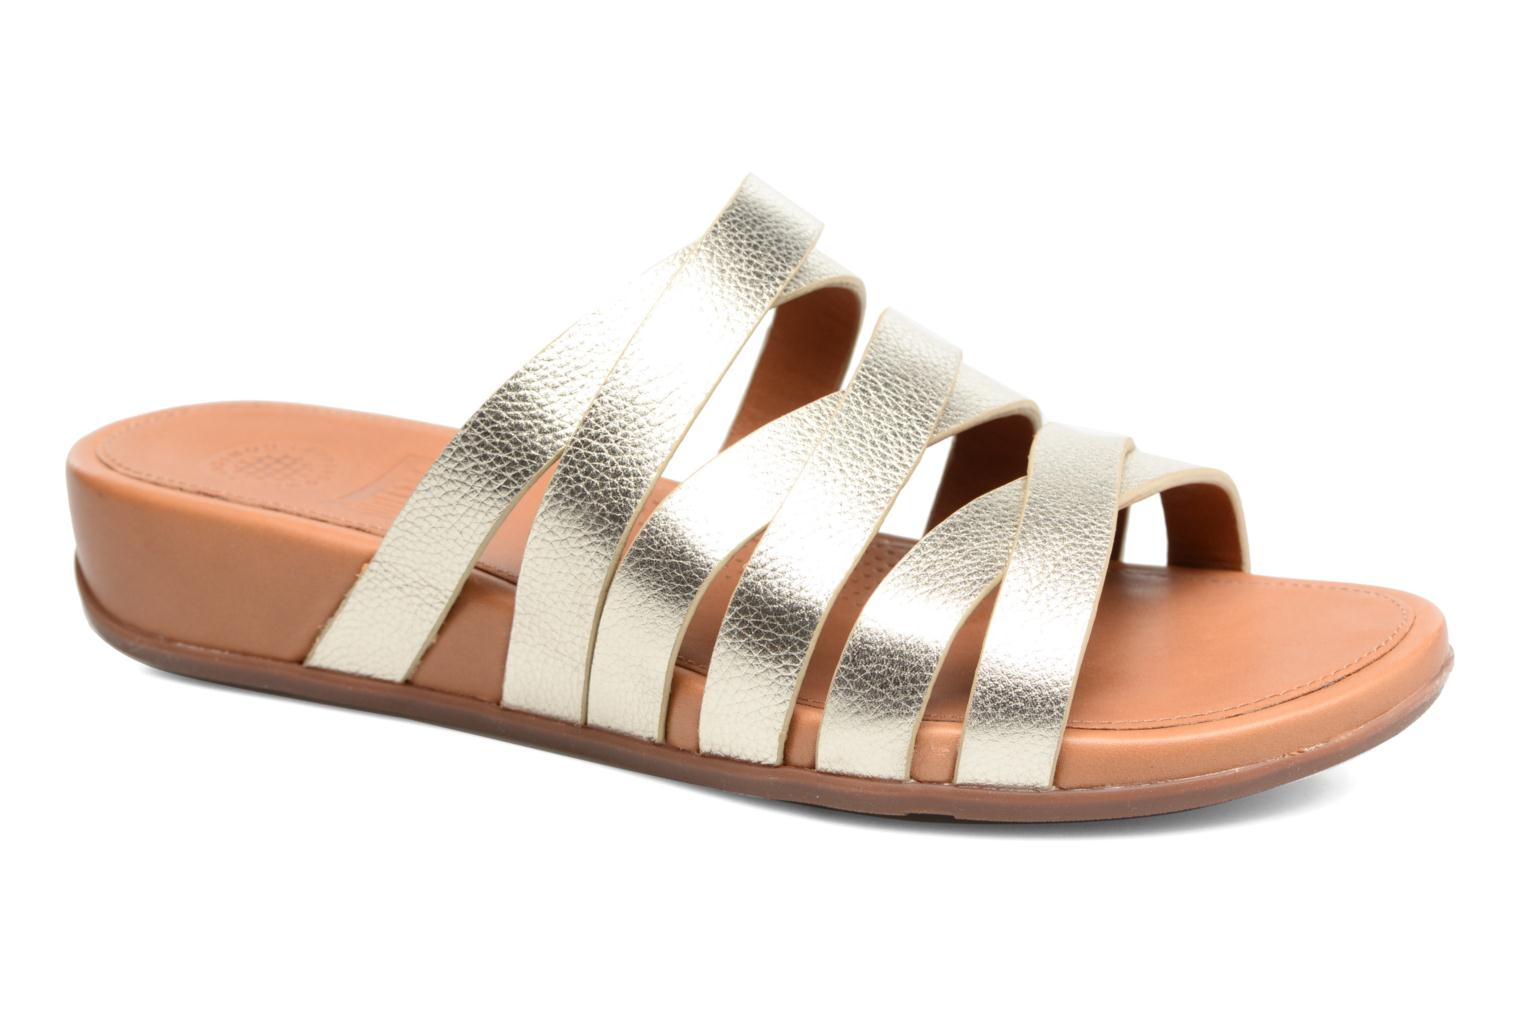 Lumy Leather Slide by FitFlopRebajas - 30%